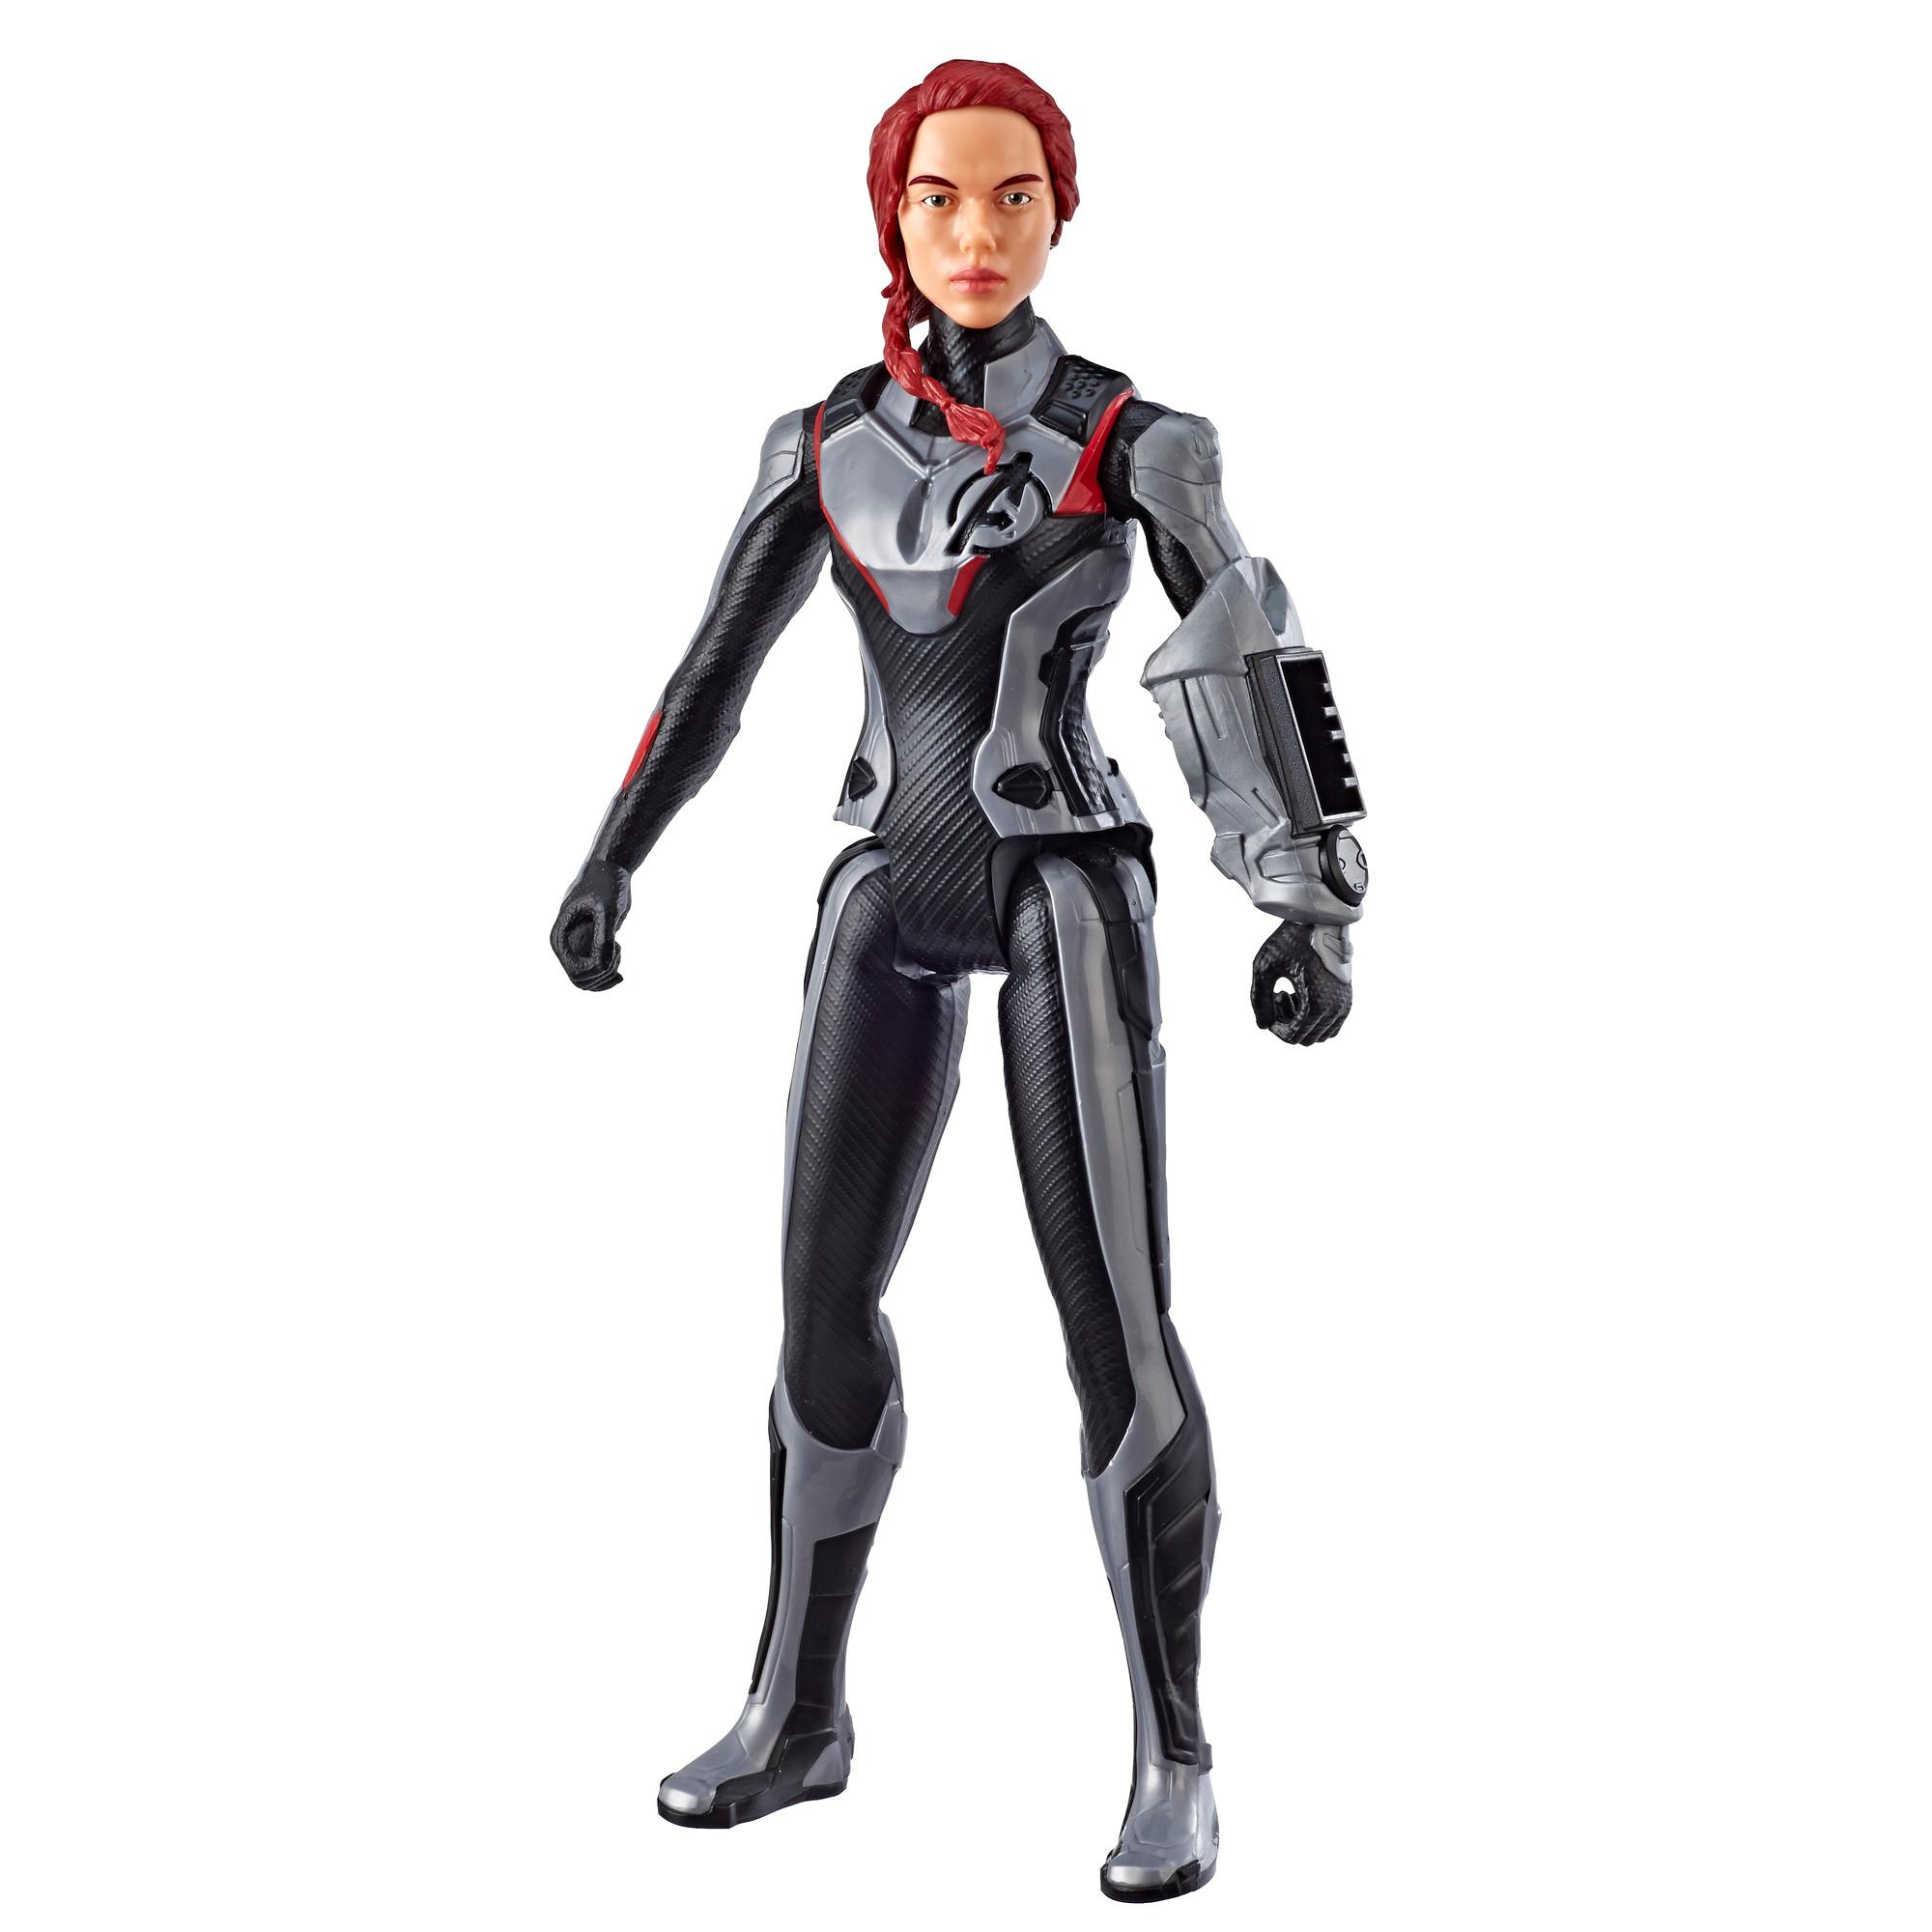 Marvel Avengers: Endgame Titan Hero Series - Figura de superheroína Black Widow de 30 cm con puerto para Titan Hero Power FX